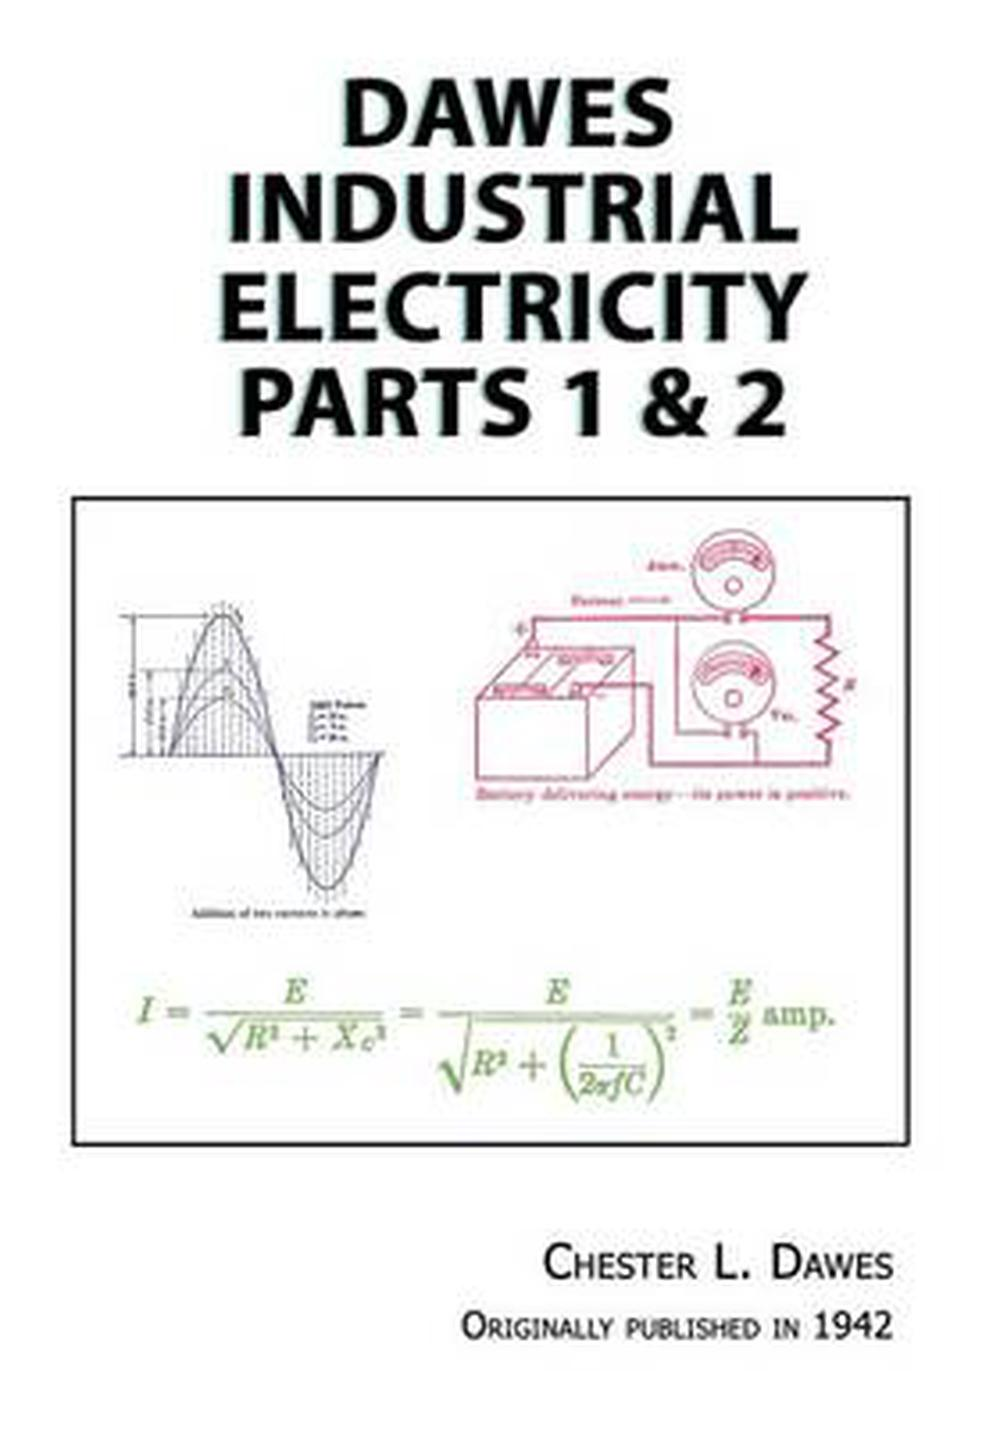 Dawes Industrial Electricity Parts 1 & 2 by Chester L. Dawes ...